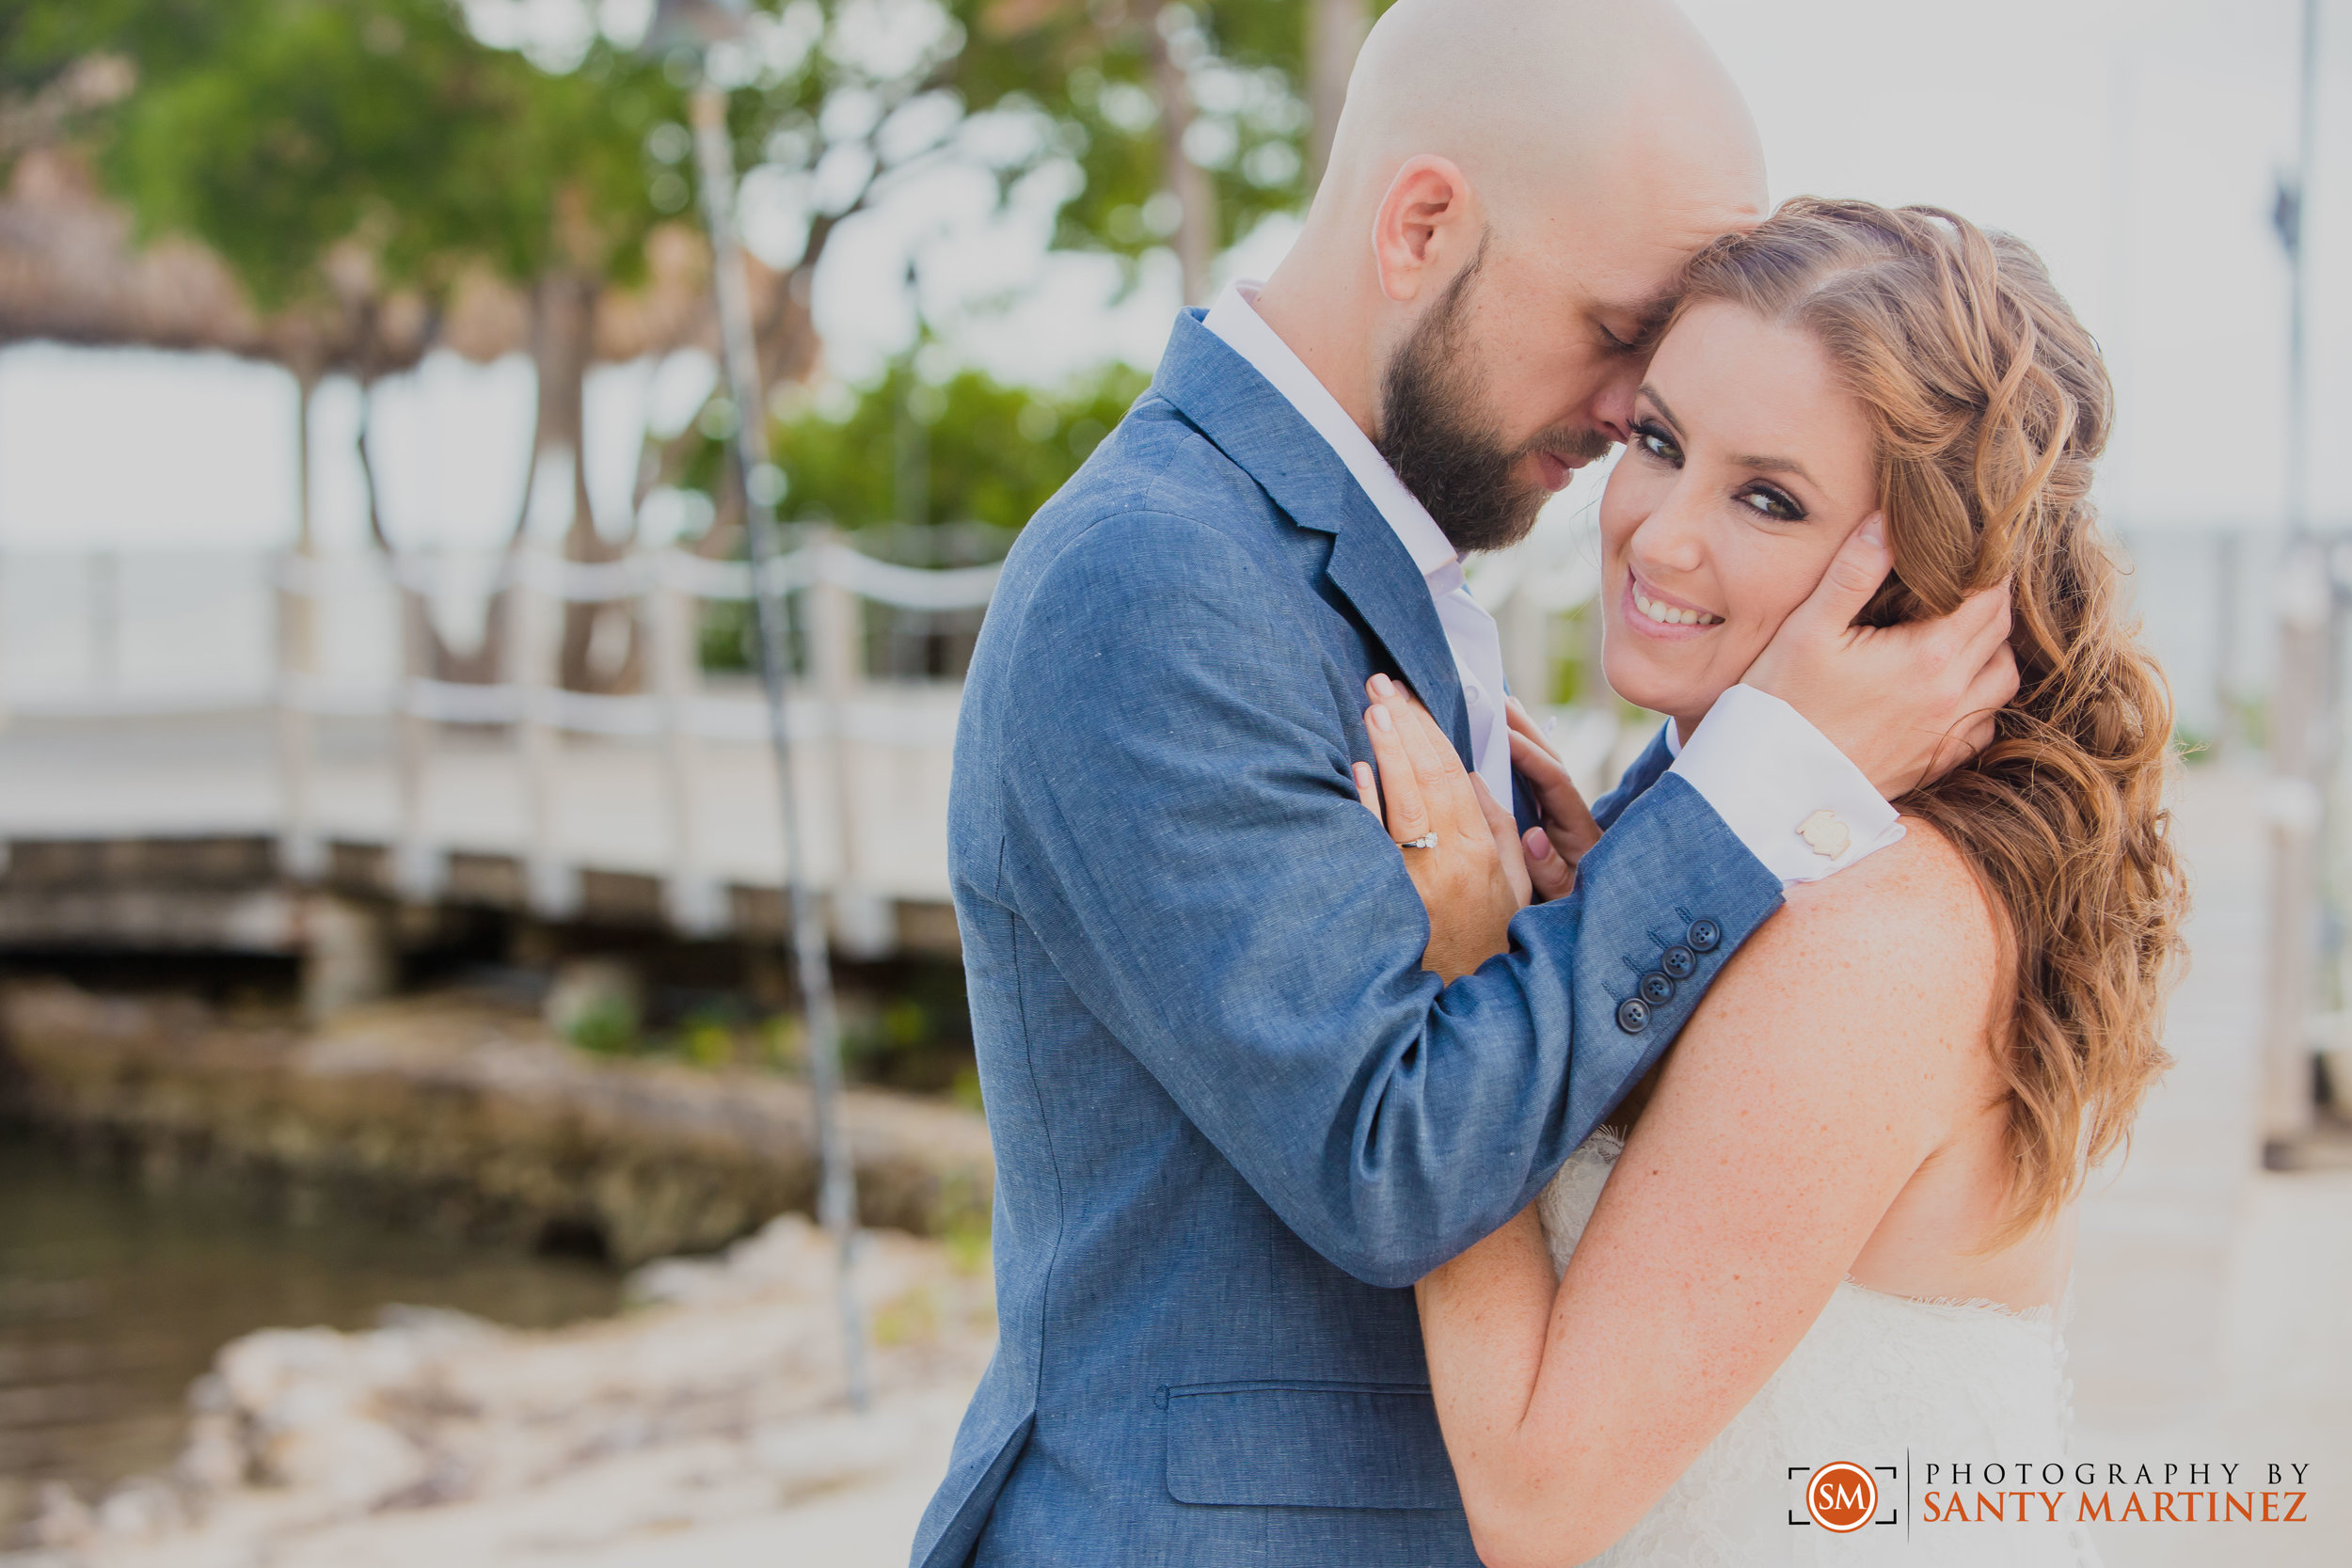 Postcard Inn Islamorada Wedding - Photography by Santy Martinez-0670.jpg